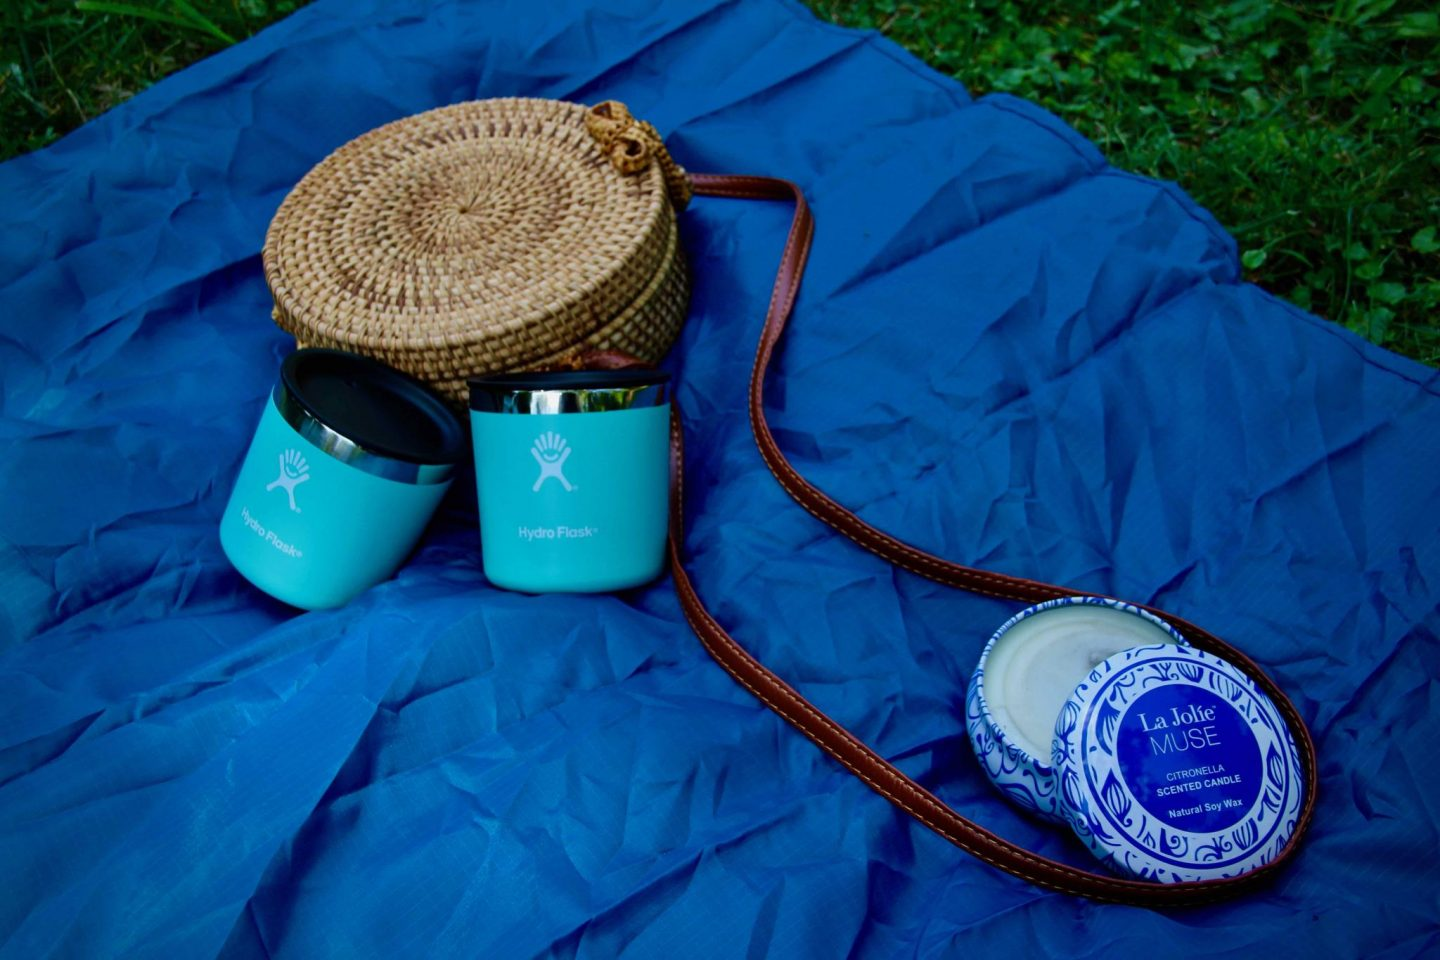 Straw Purse, Hydro Flasks, & Citronella Candles ... 5 Favorite Things for Summer Picnics ... The Spectacular Adventurer